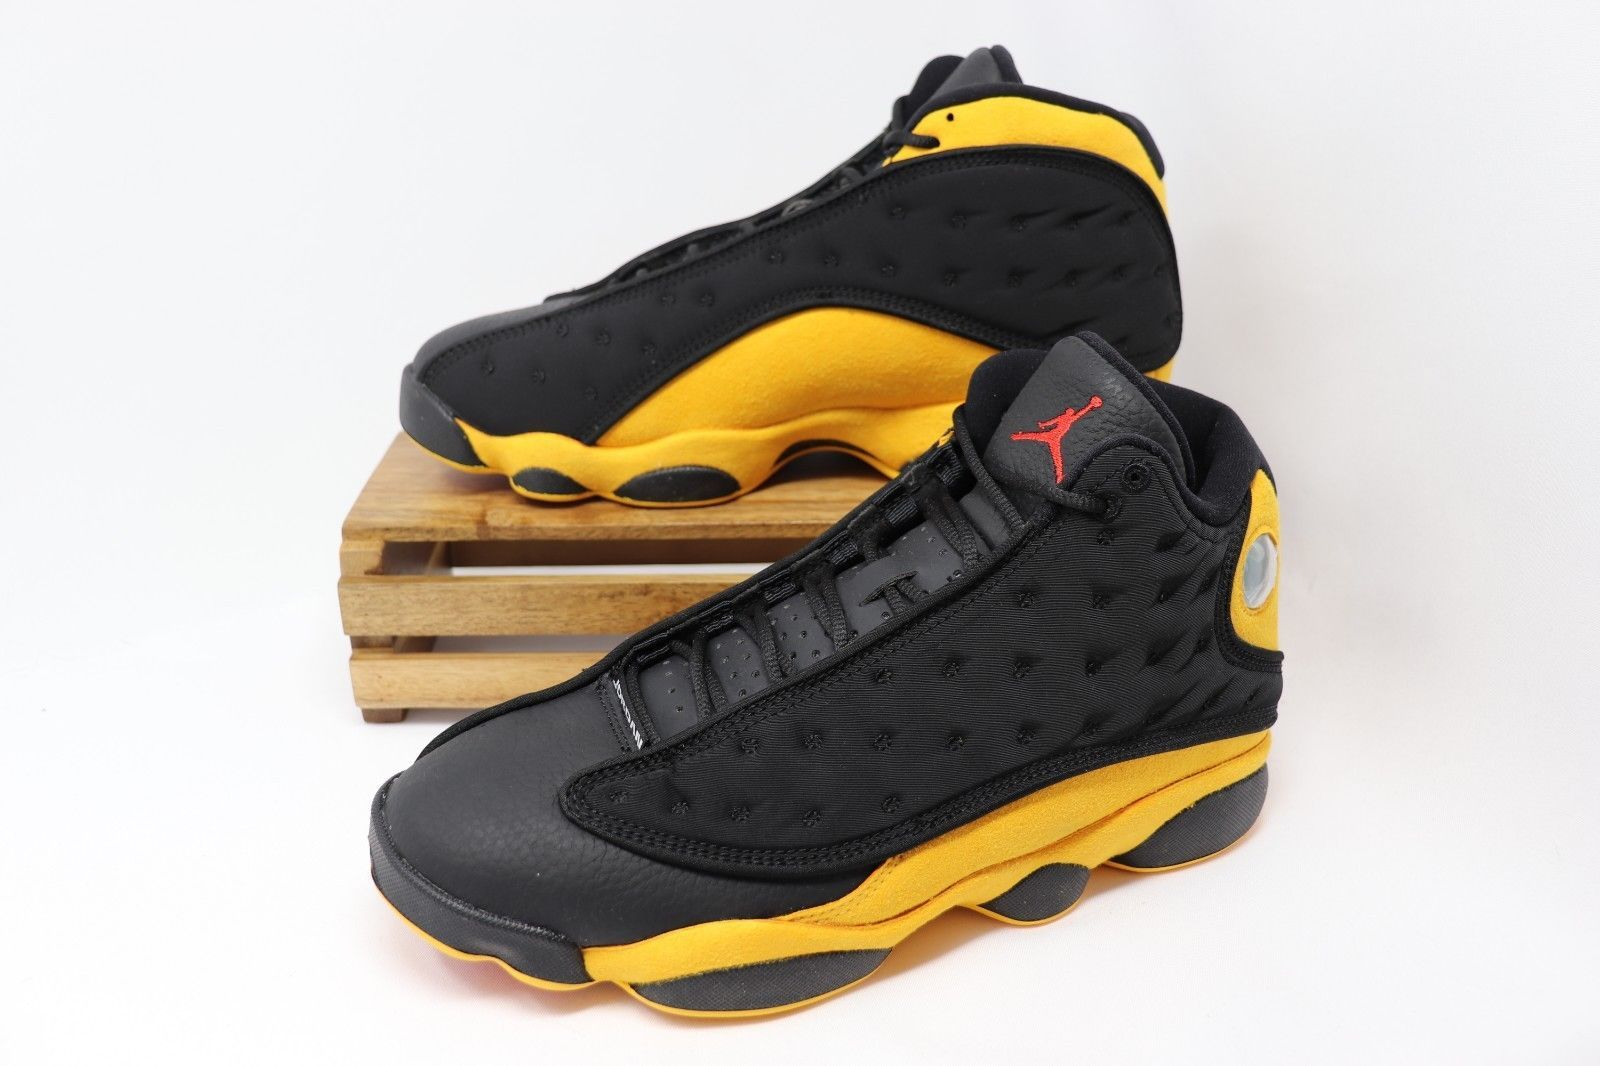 the best attitude ddbe5 9b3f9 Details about Nike Air Jordan 13 XIII Retro Melo Black ...